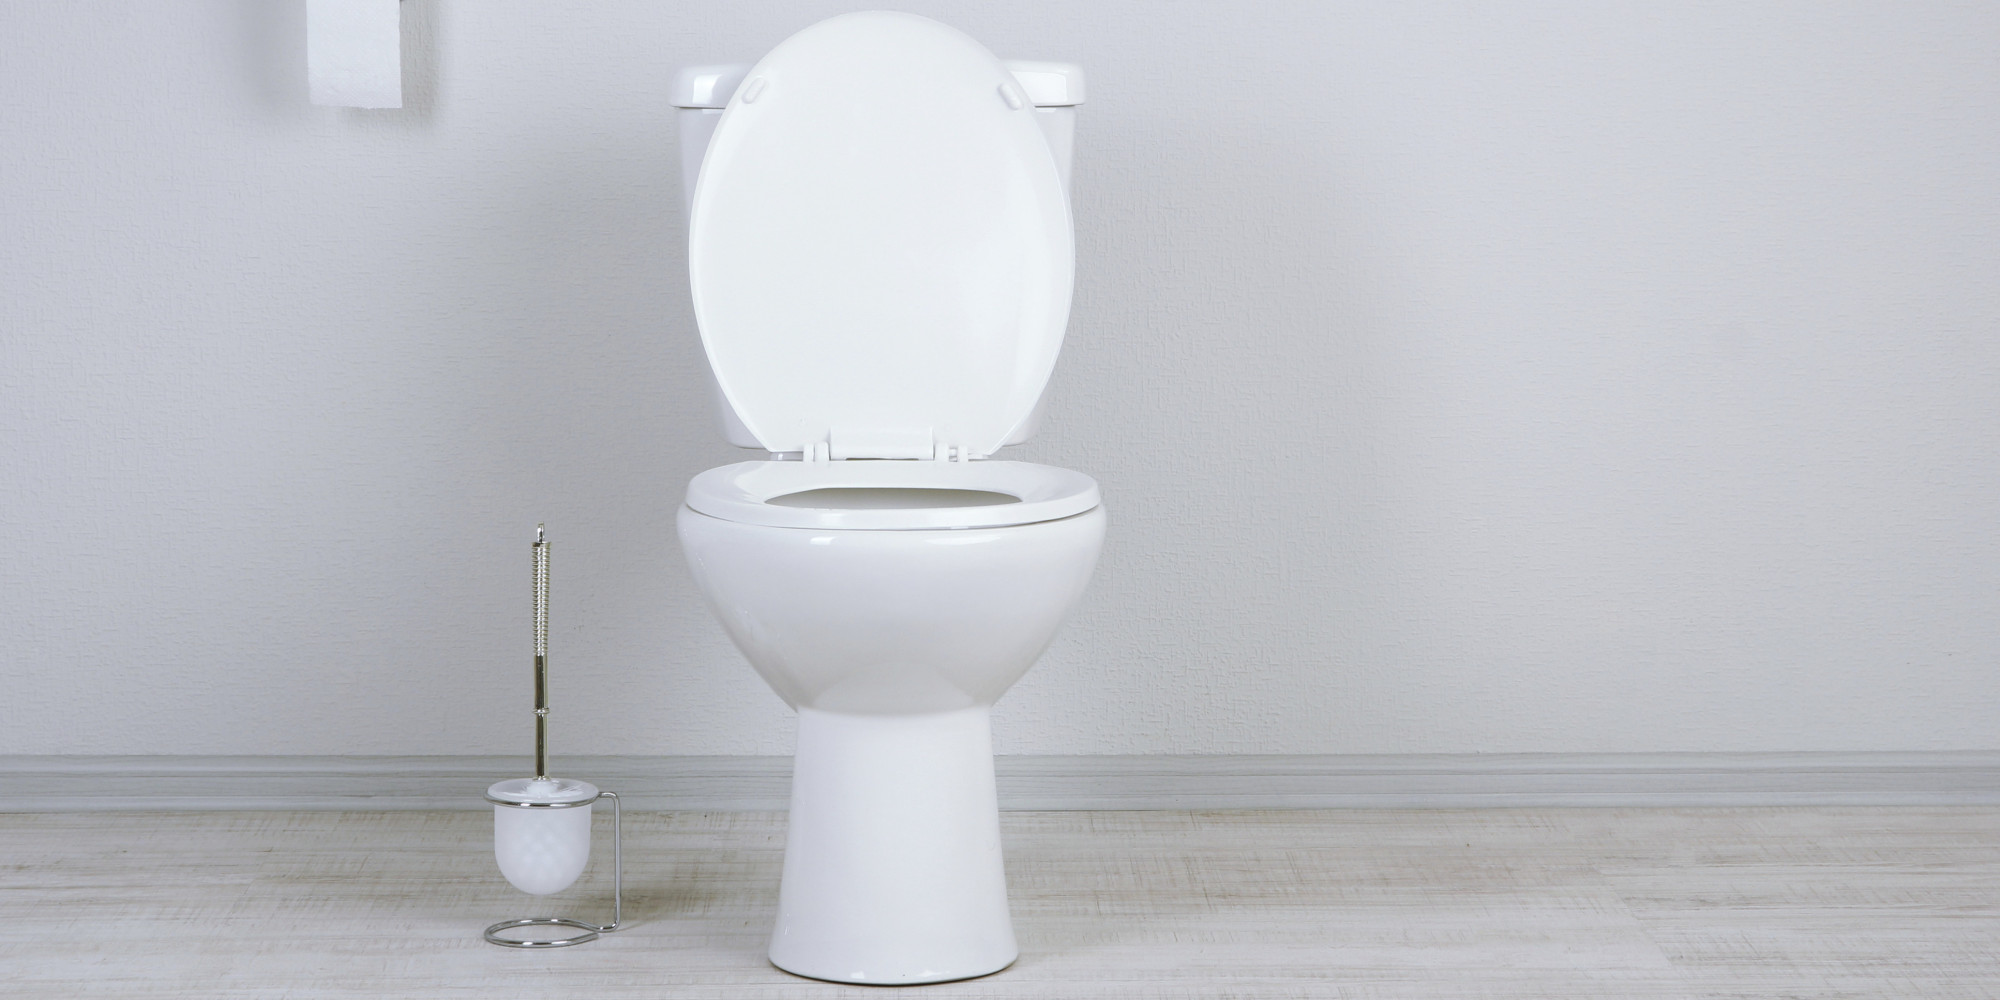 Toilet Needs A New Home